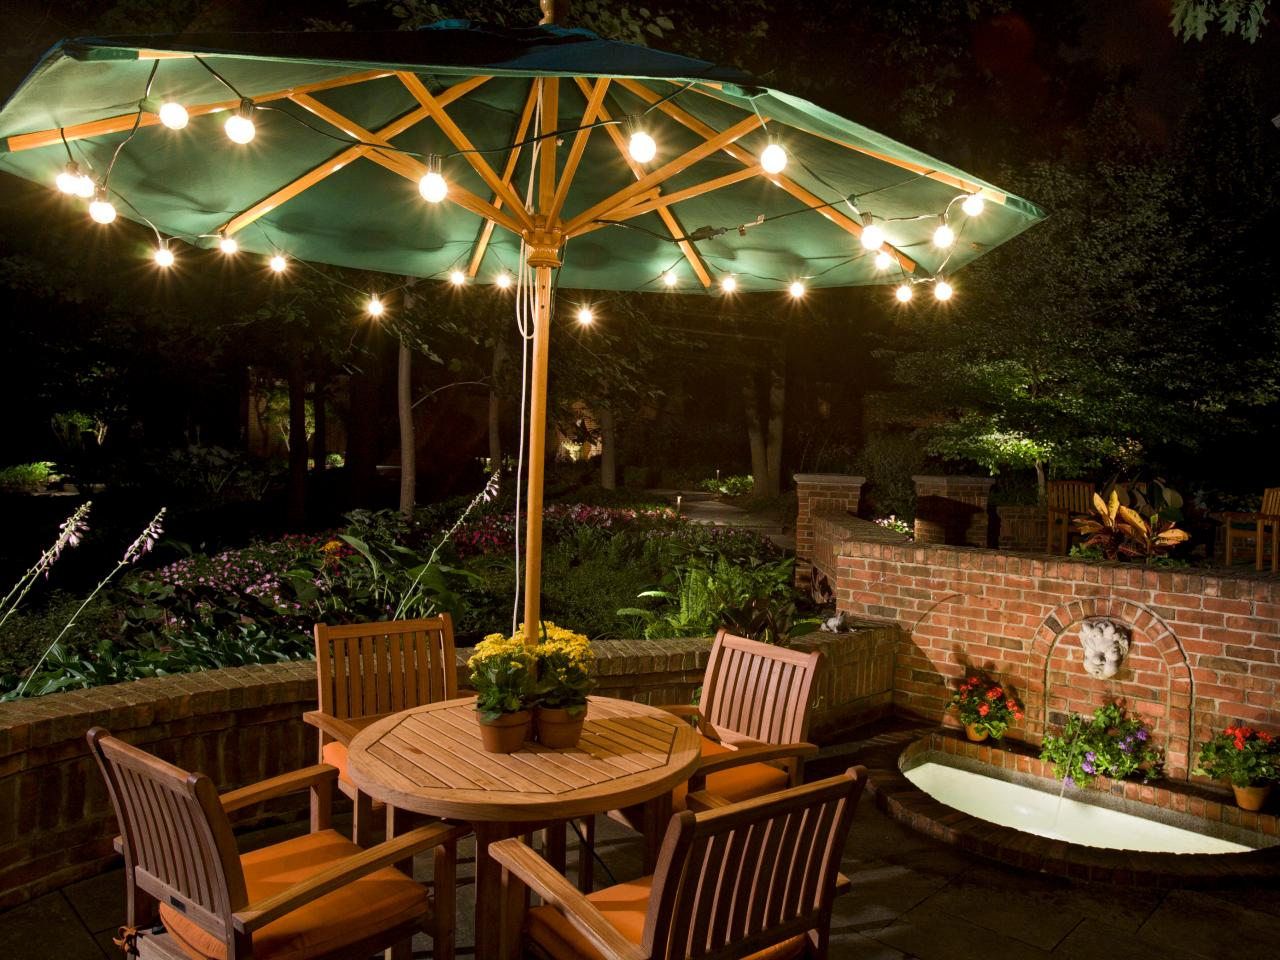 Attractive Outdoor Landscape Lighting Ideas Part - 8: HGTV.com